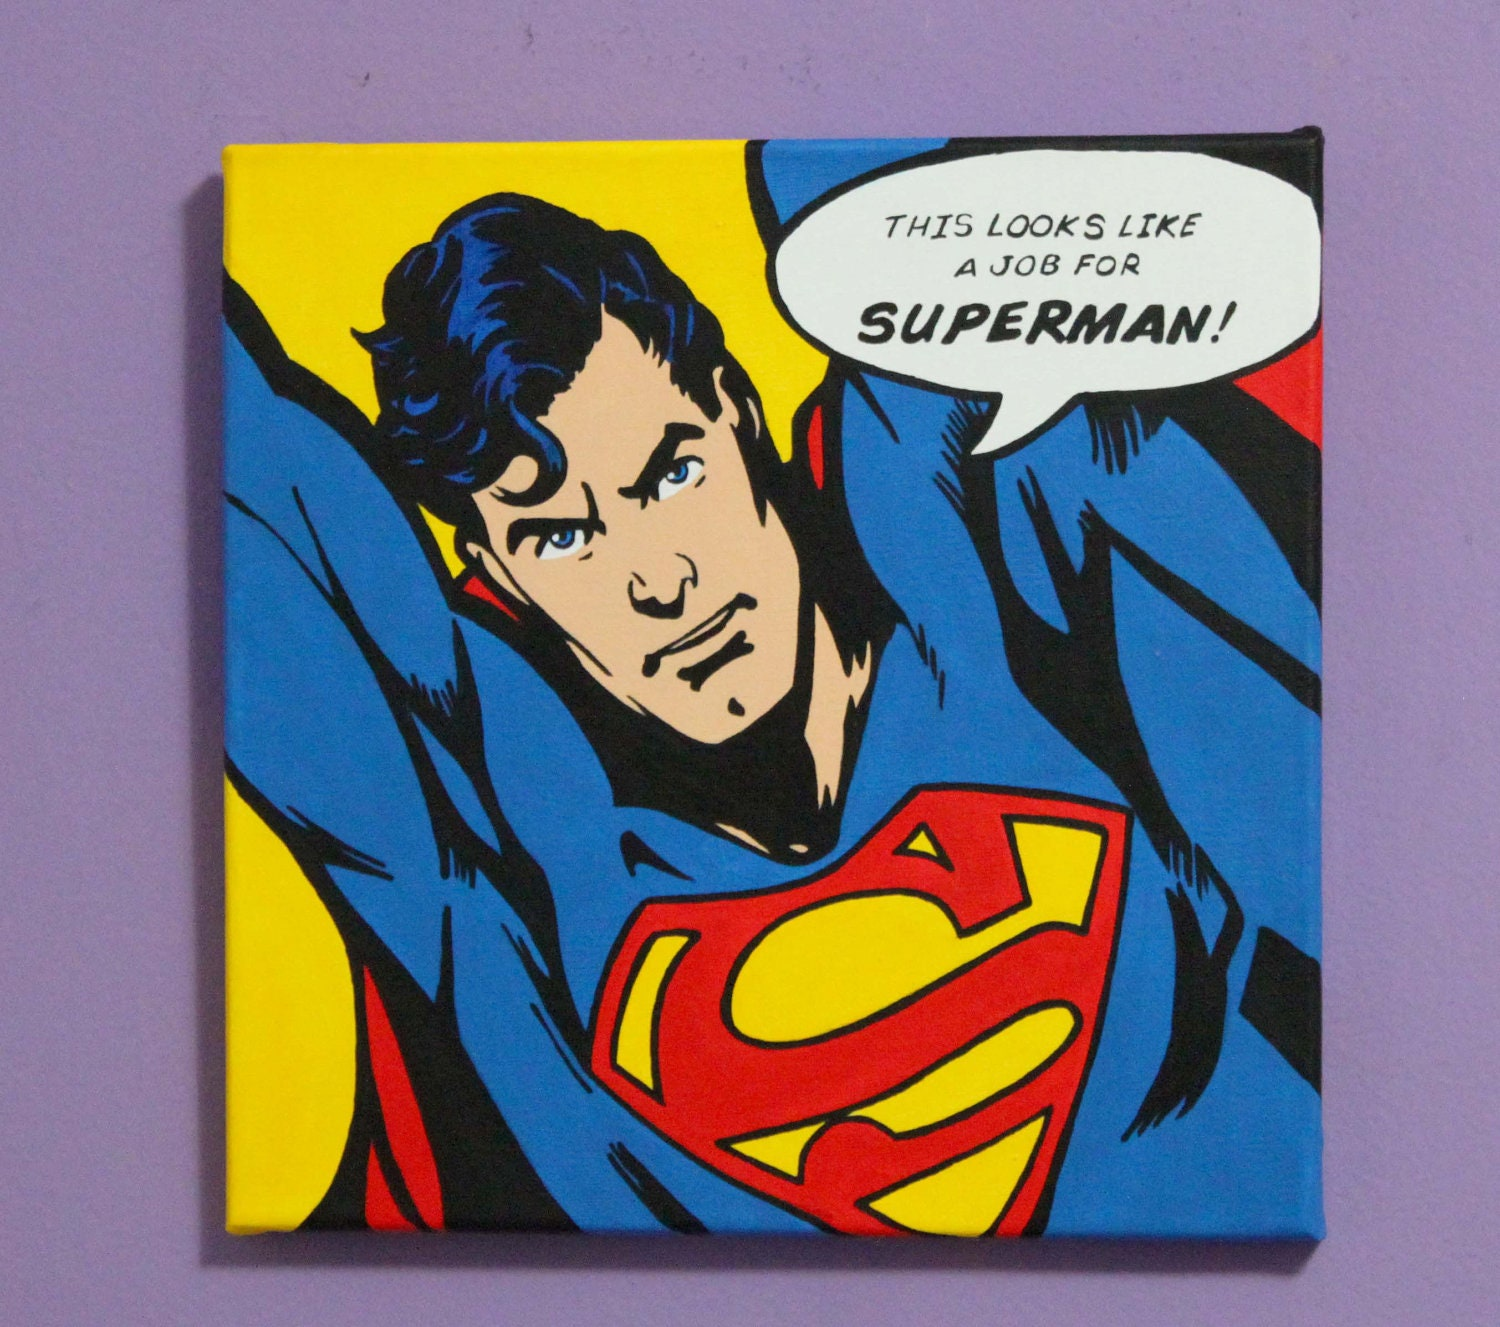 pop superman 1950s painting movement 1960s contextual references britain reached began united